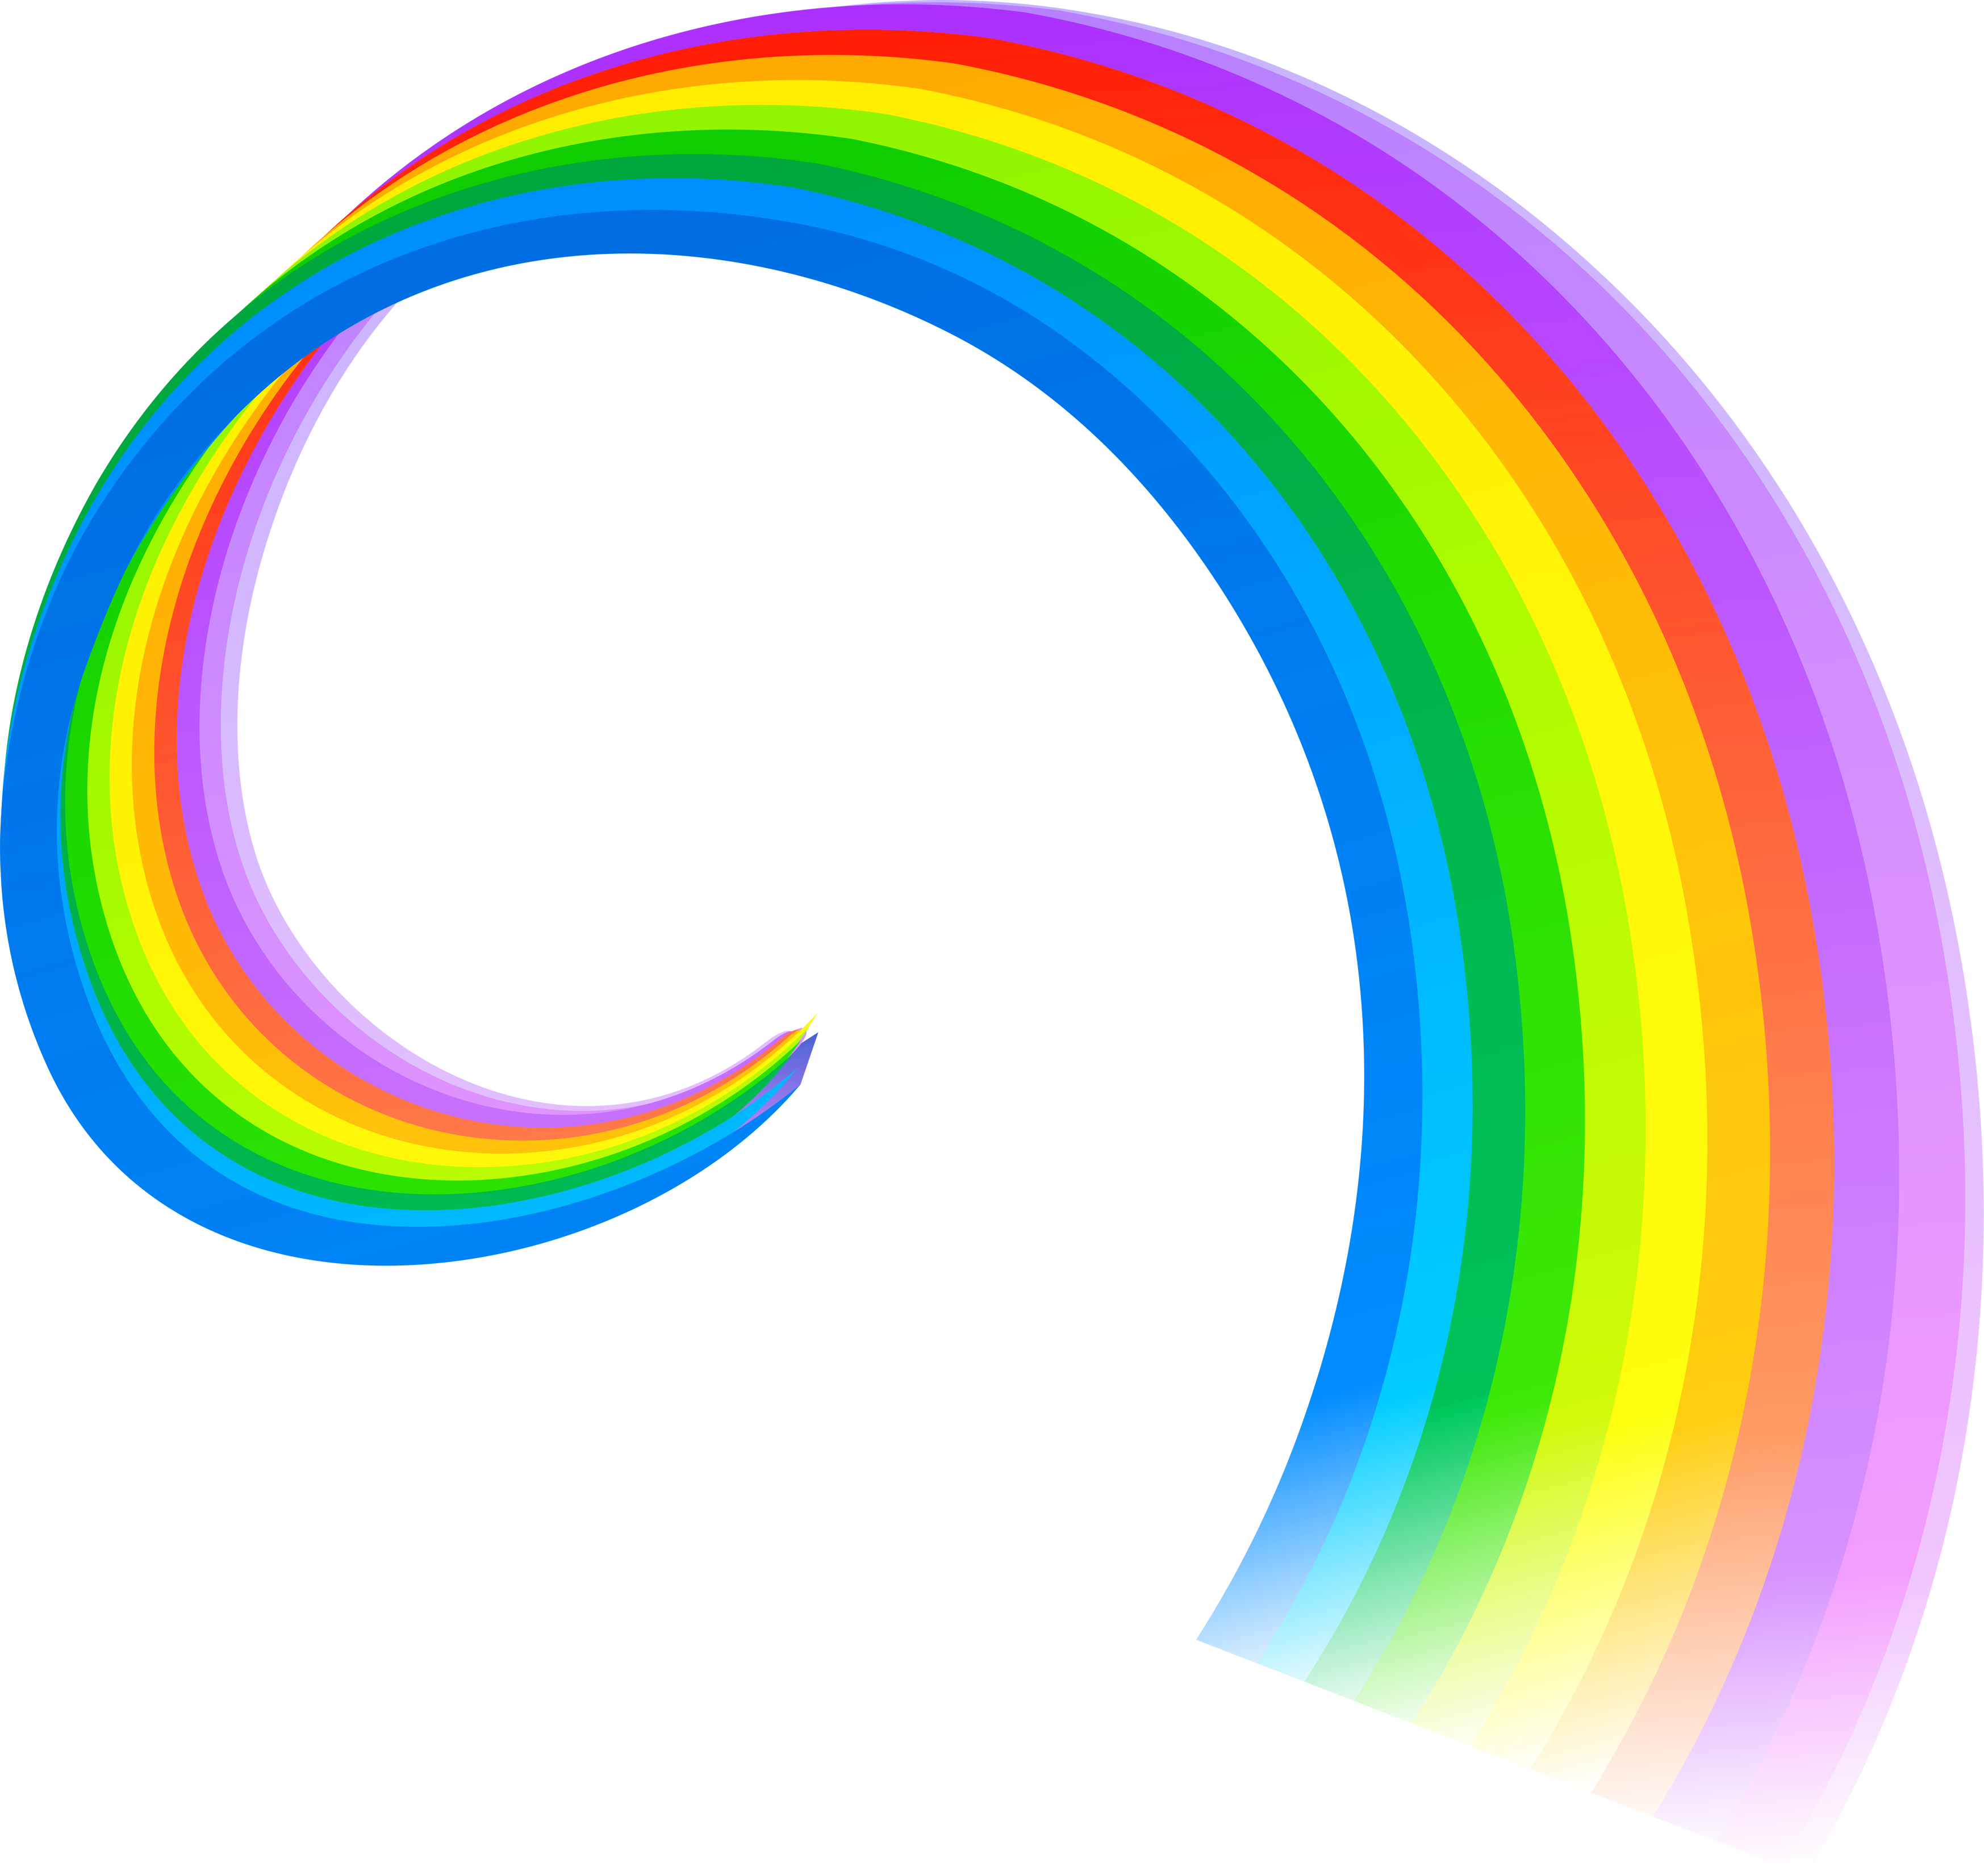 Gas clipart rainbow. Transparent png pictures free